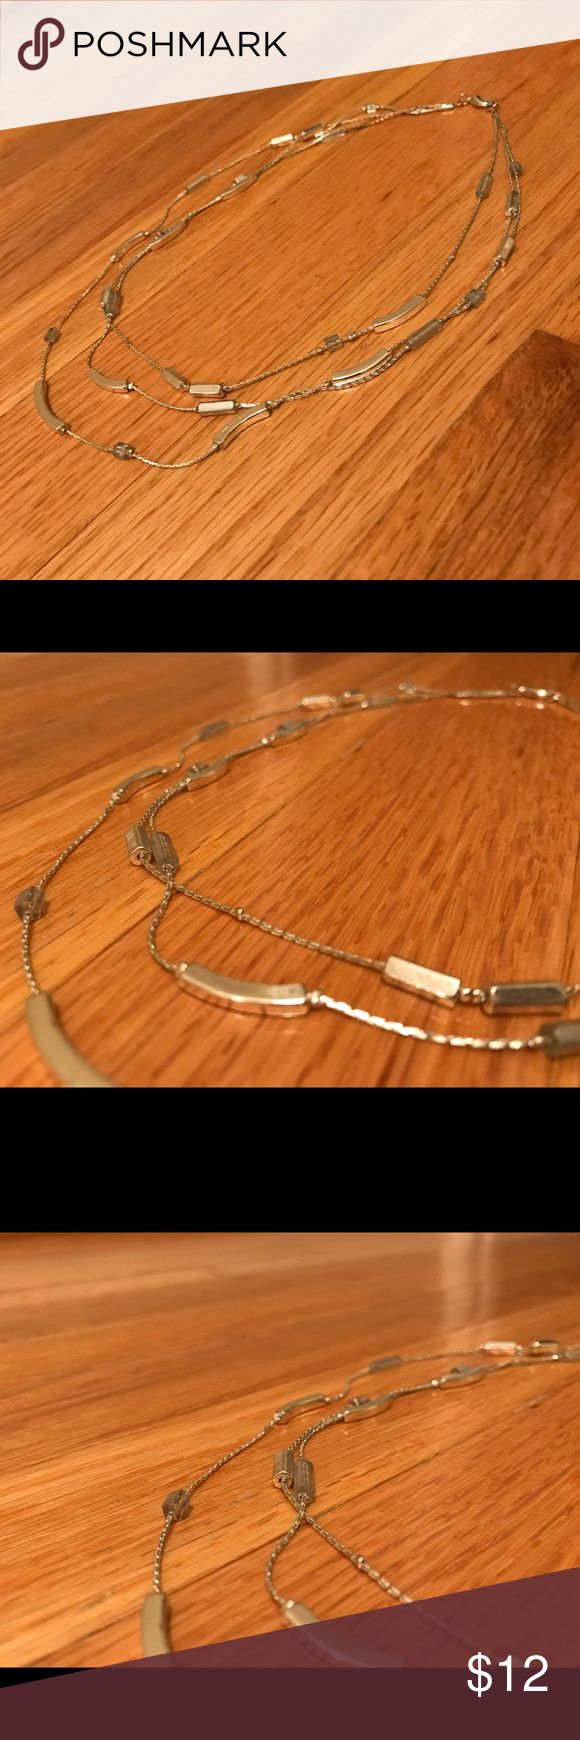 Limited silver multi thread necklace From smoke free home. In excellent condition. Approximately 8 inches in length. The Limited Jewelry Necklaces